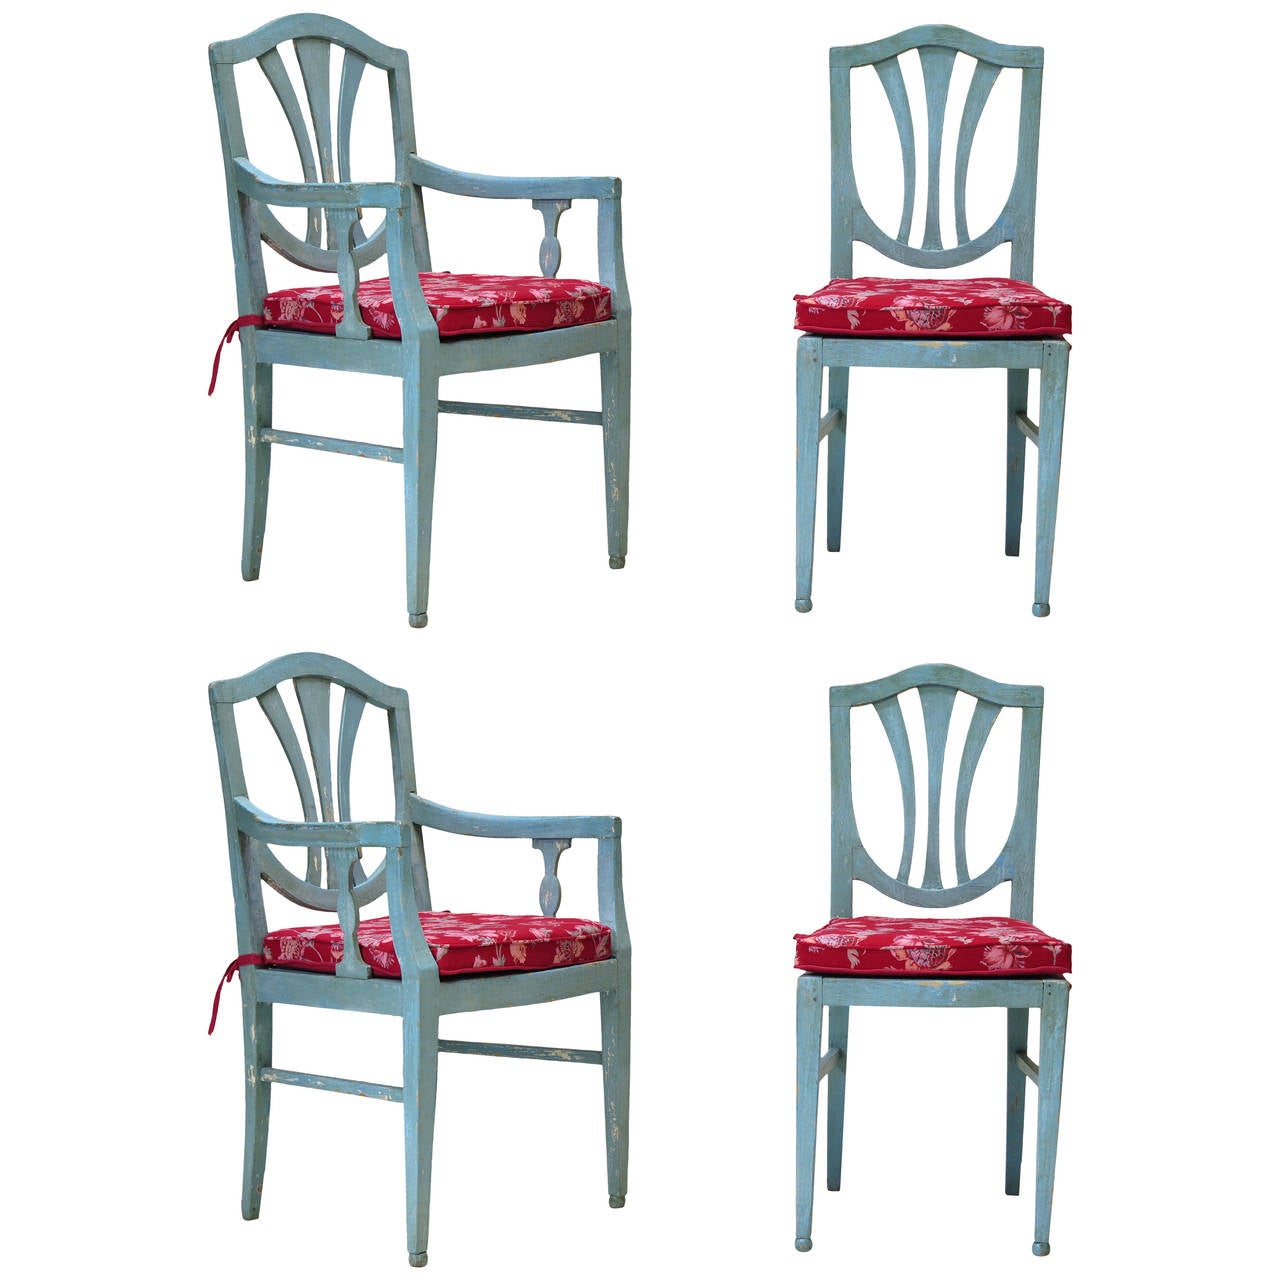 Two Chairs and Two Armchairs, France, circa 1920s